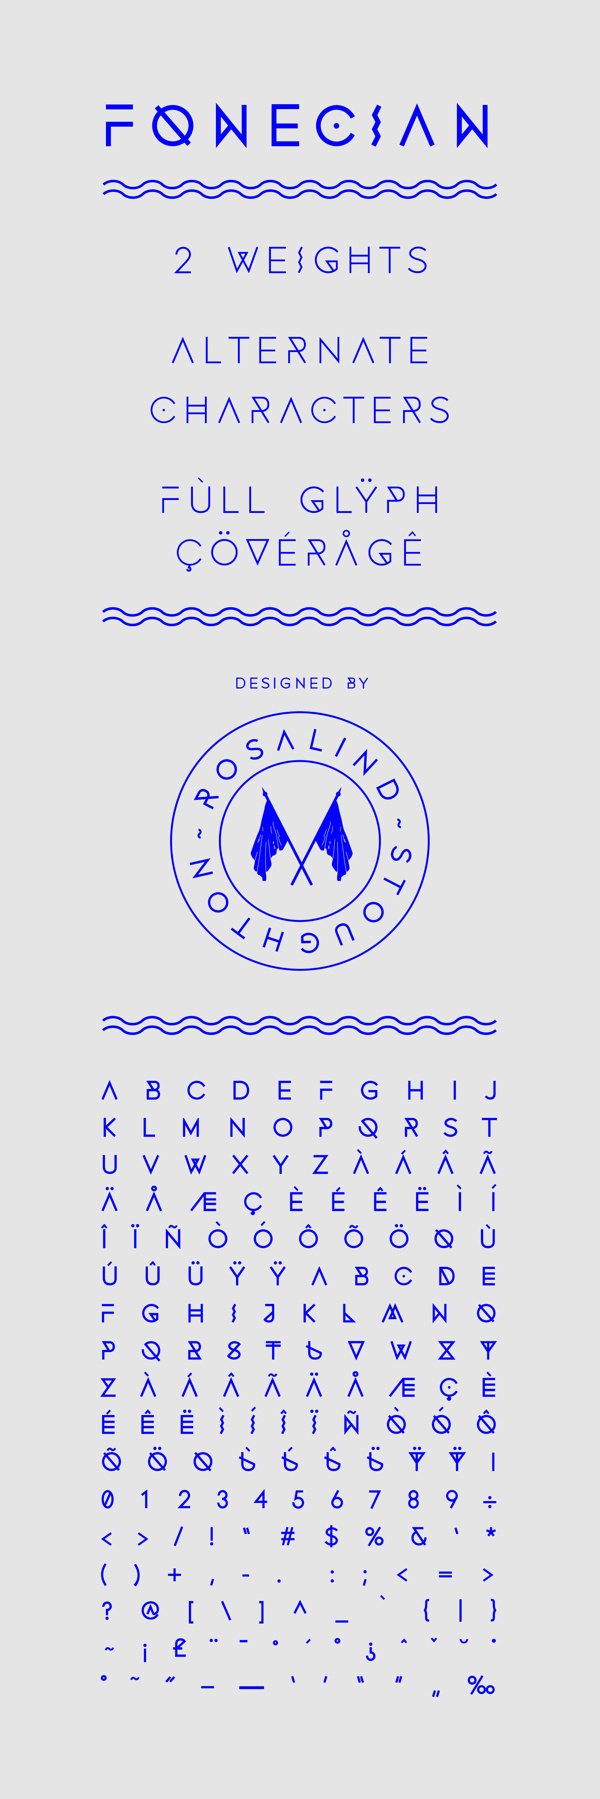 Fonecian Typeface on Behance #simple #shapes